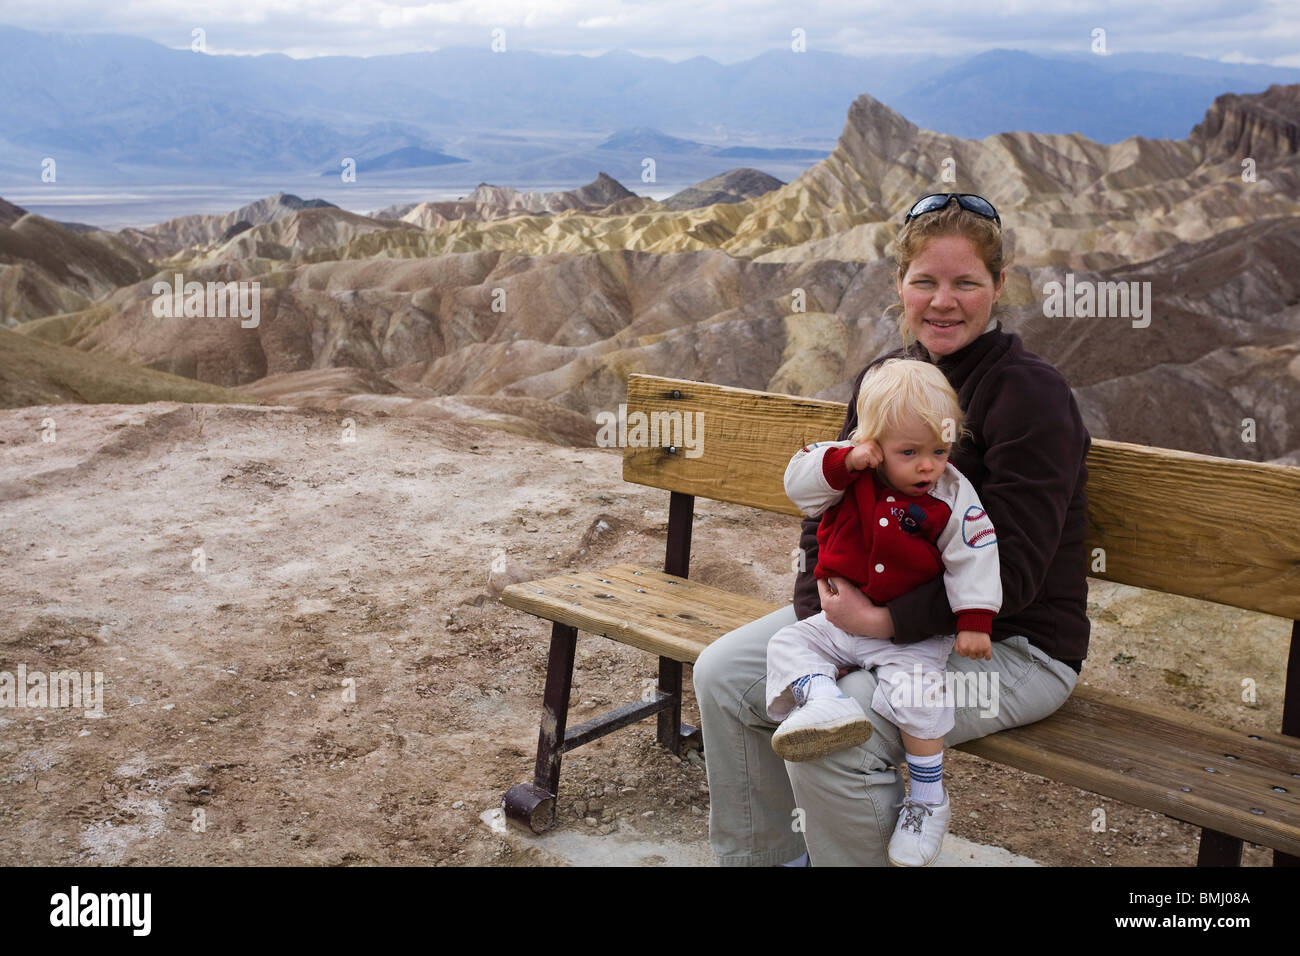 Mom and son at Zabriskie Point, Death Valley National Park, California. - Stock Image